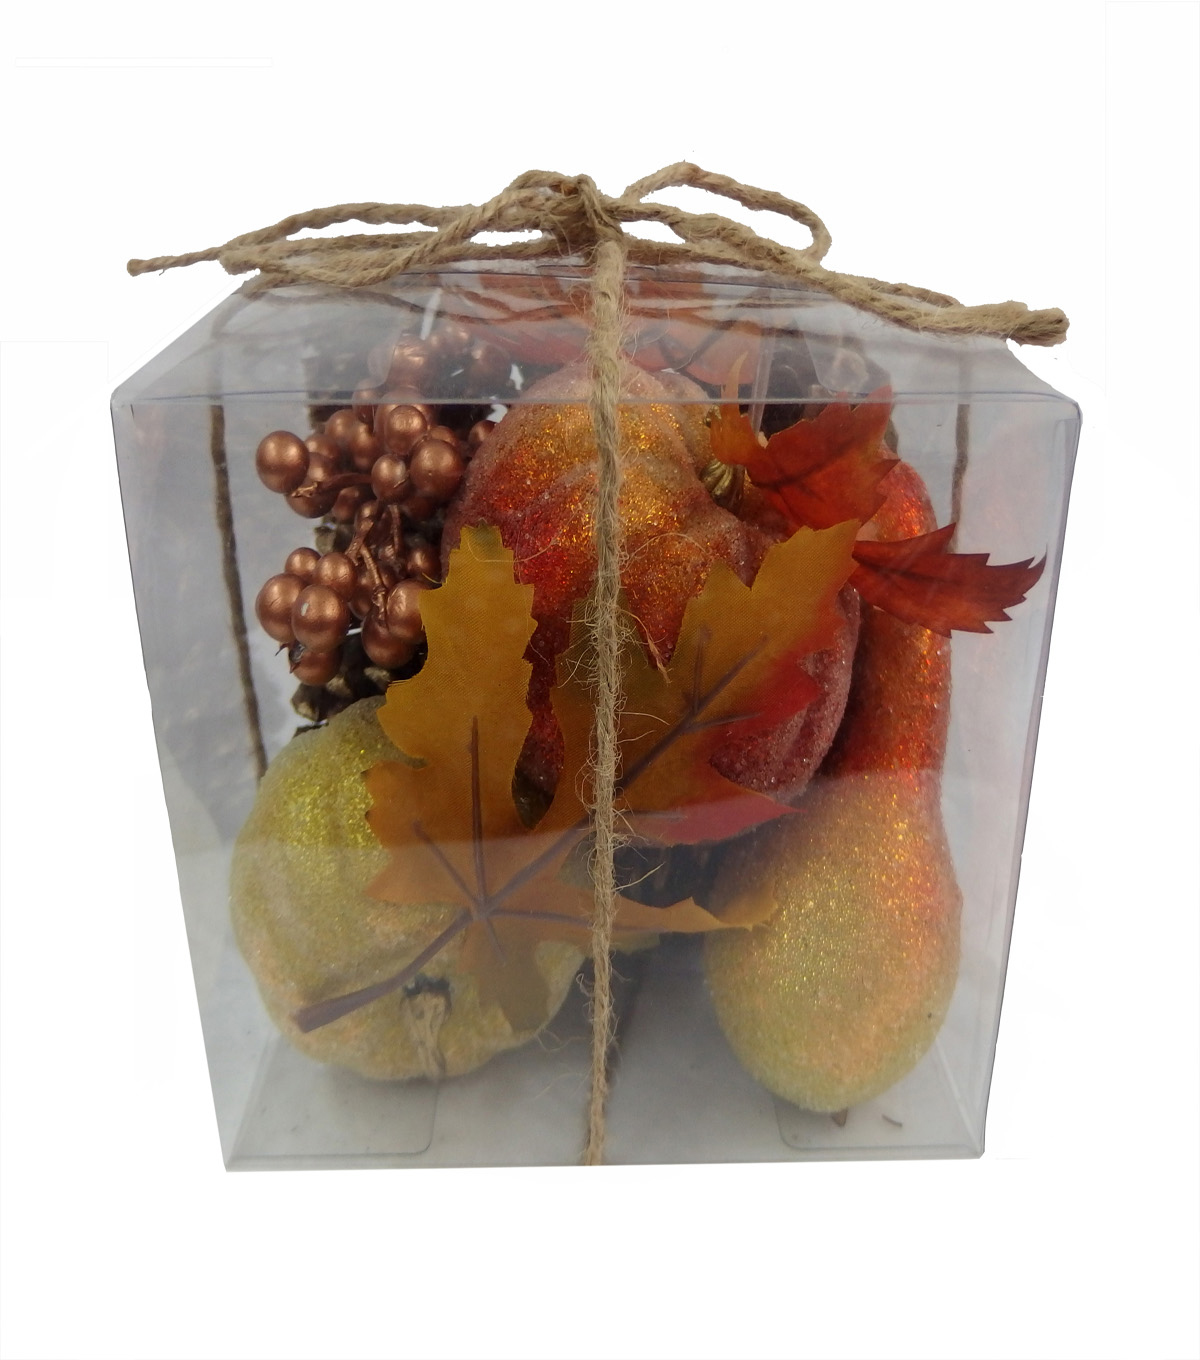 Blooming Autumn Sugar Coating Pumpkin, Pinecone, Berries  & Gourd In Box